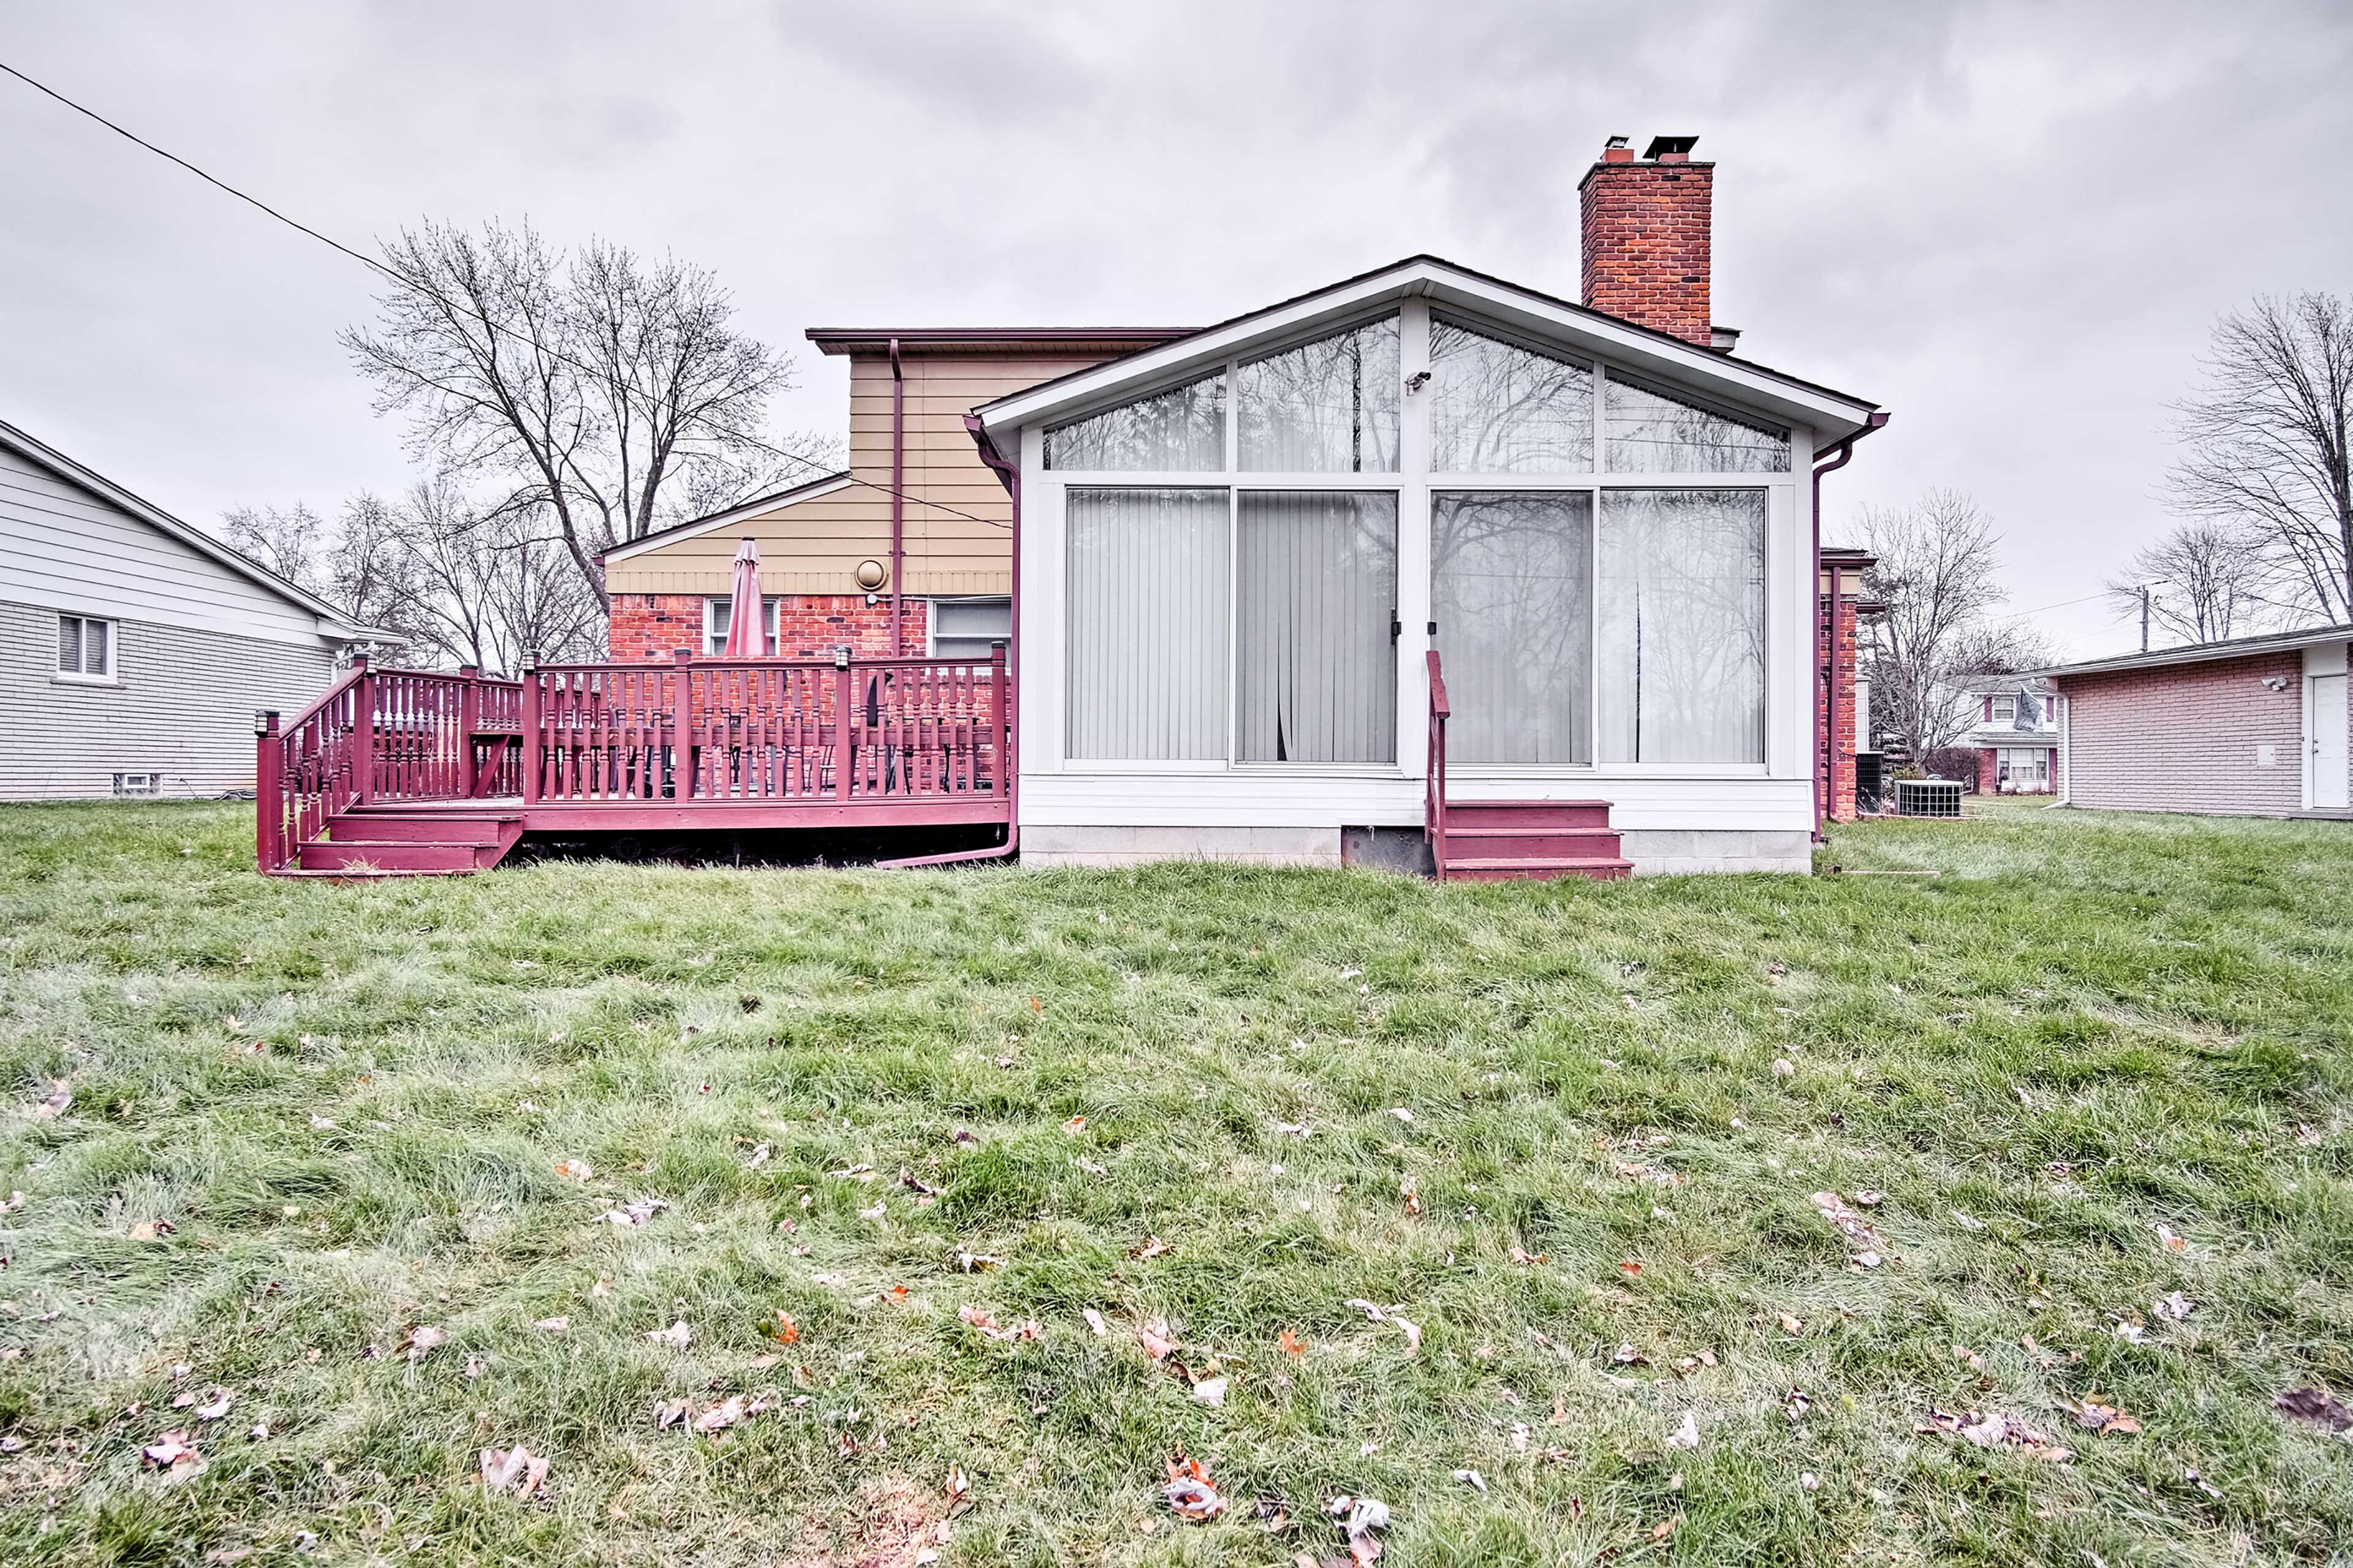 Let the kids run and play in this spacious yard!